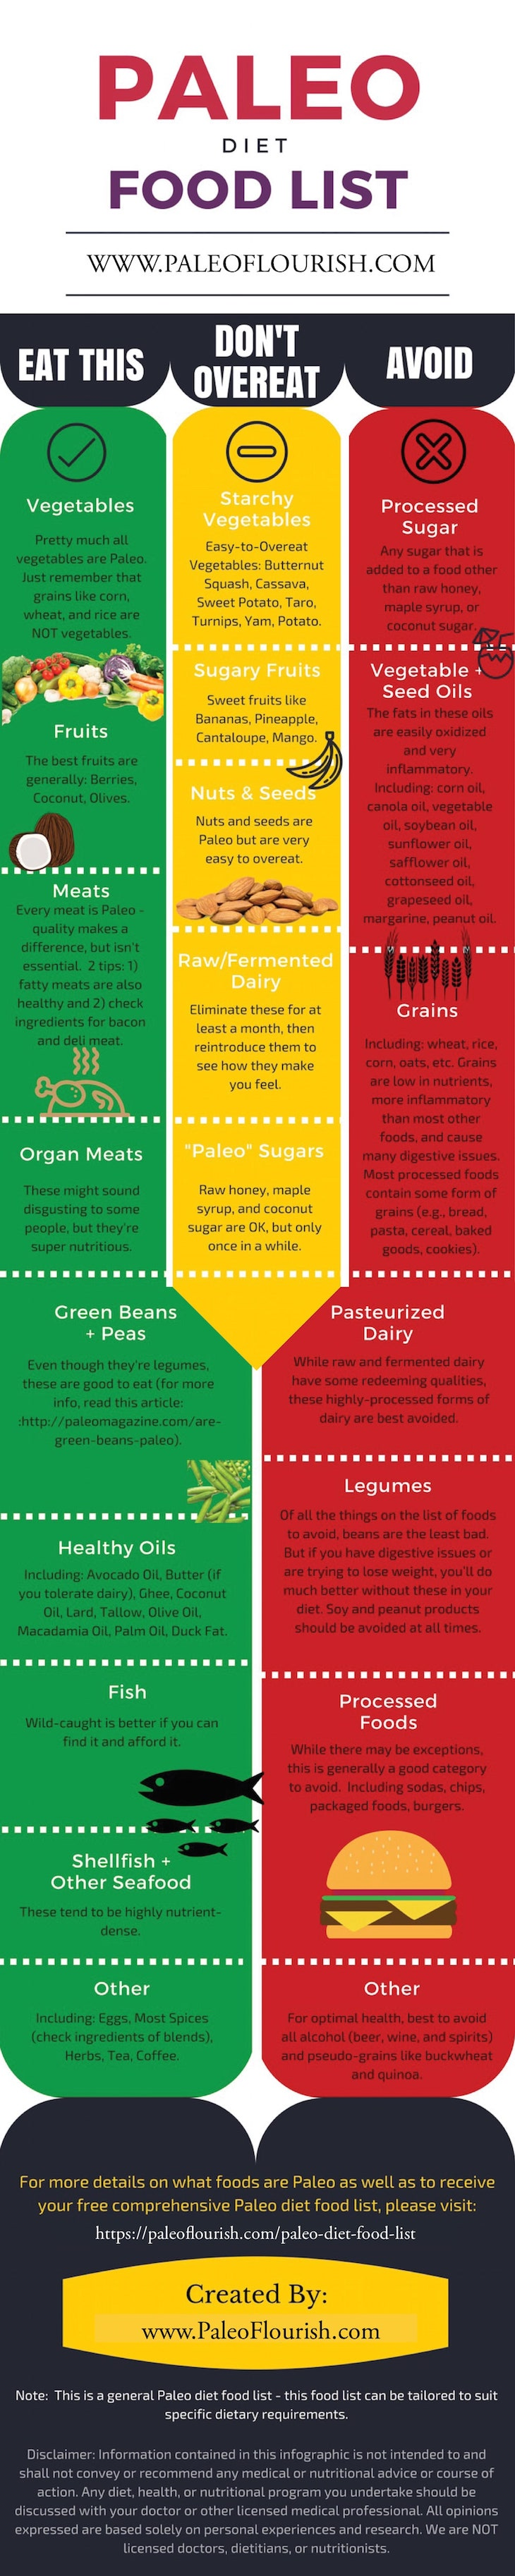 Paleo-diet-food-list-infographic-plaza